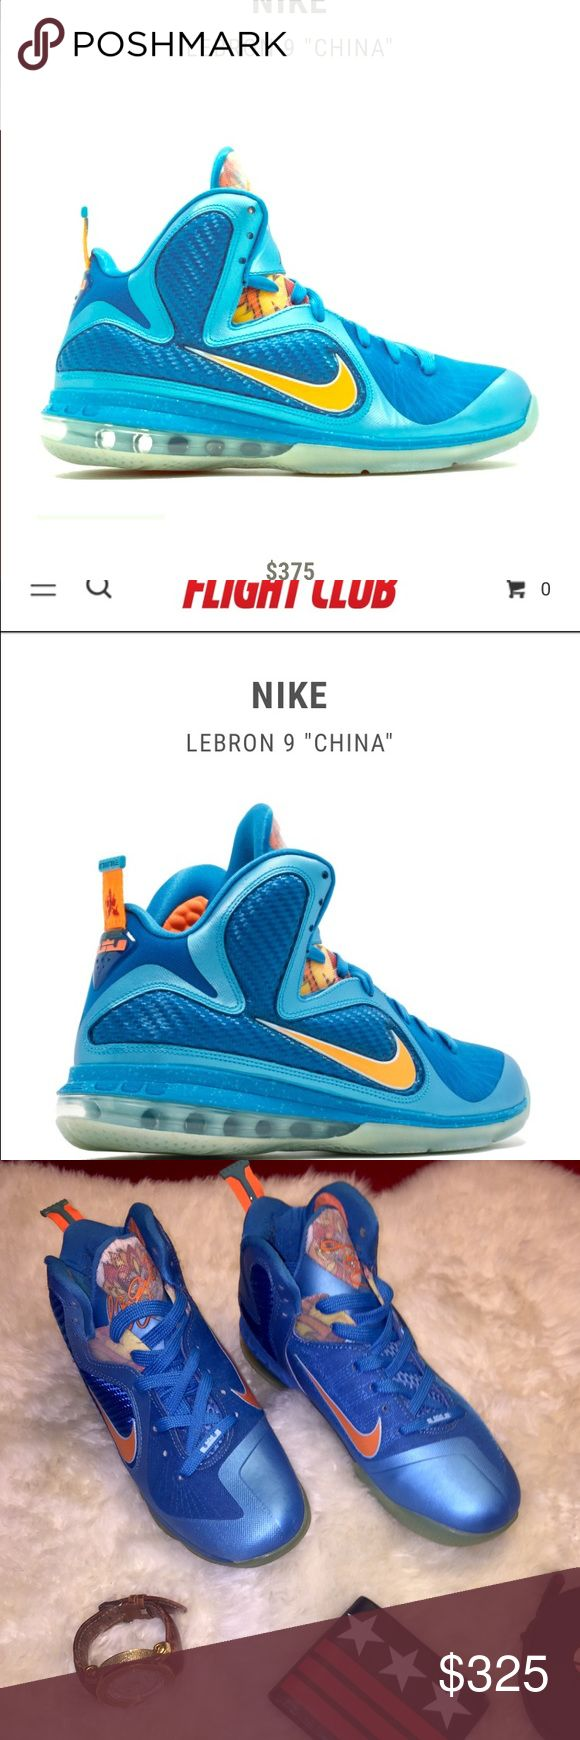 "🔷Nike LeBron 9 ""China"" 🔷 Nike LeBron 9 ""China"" 